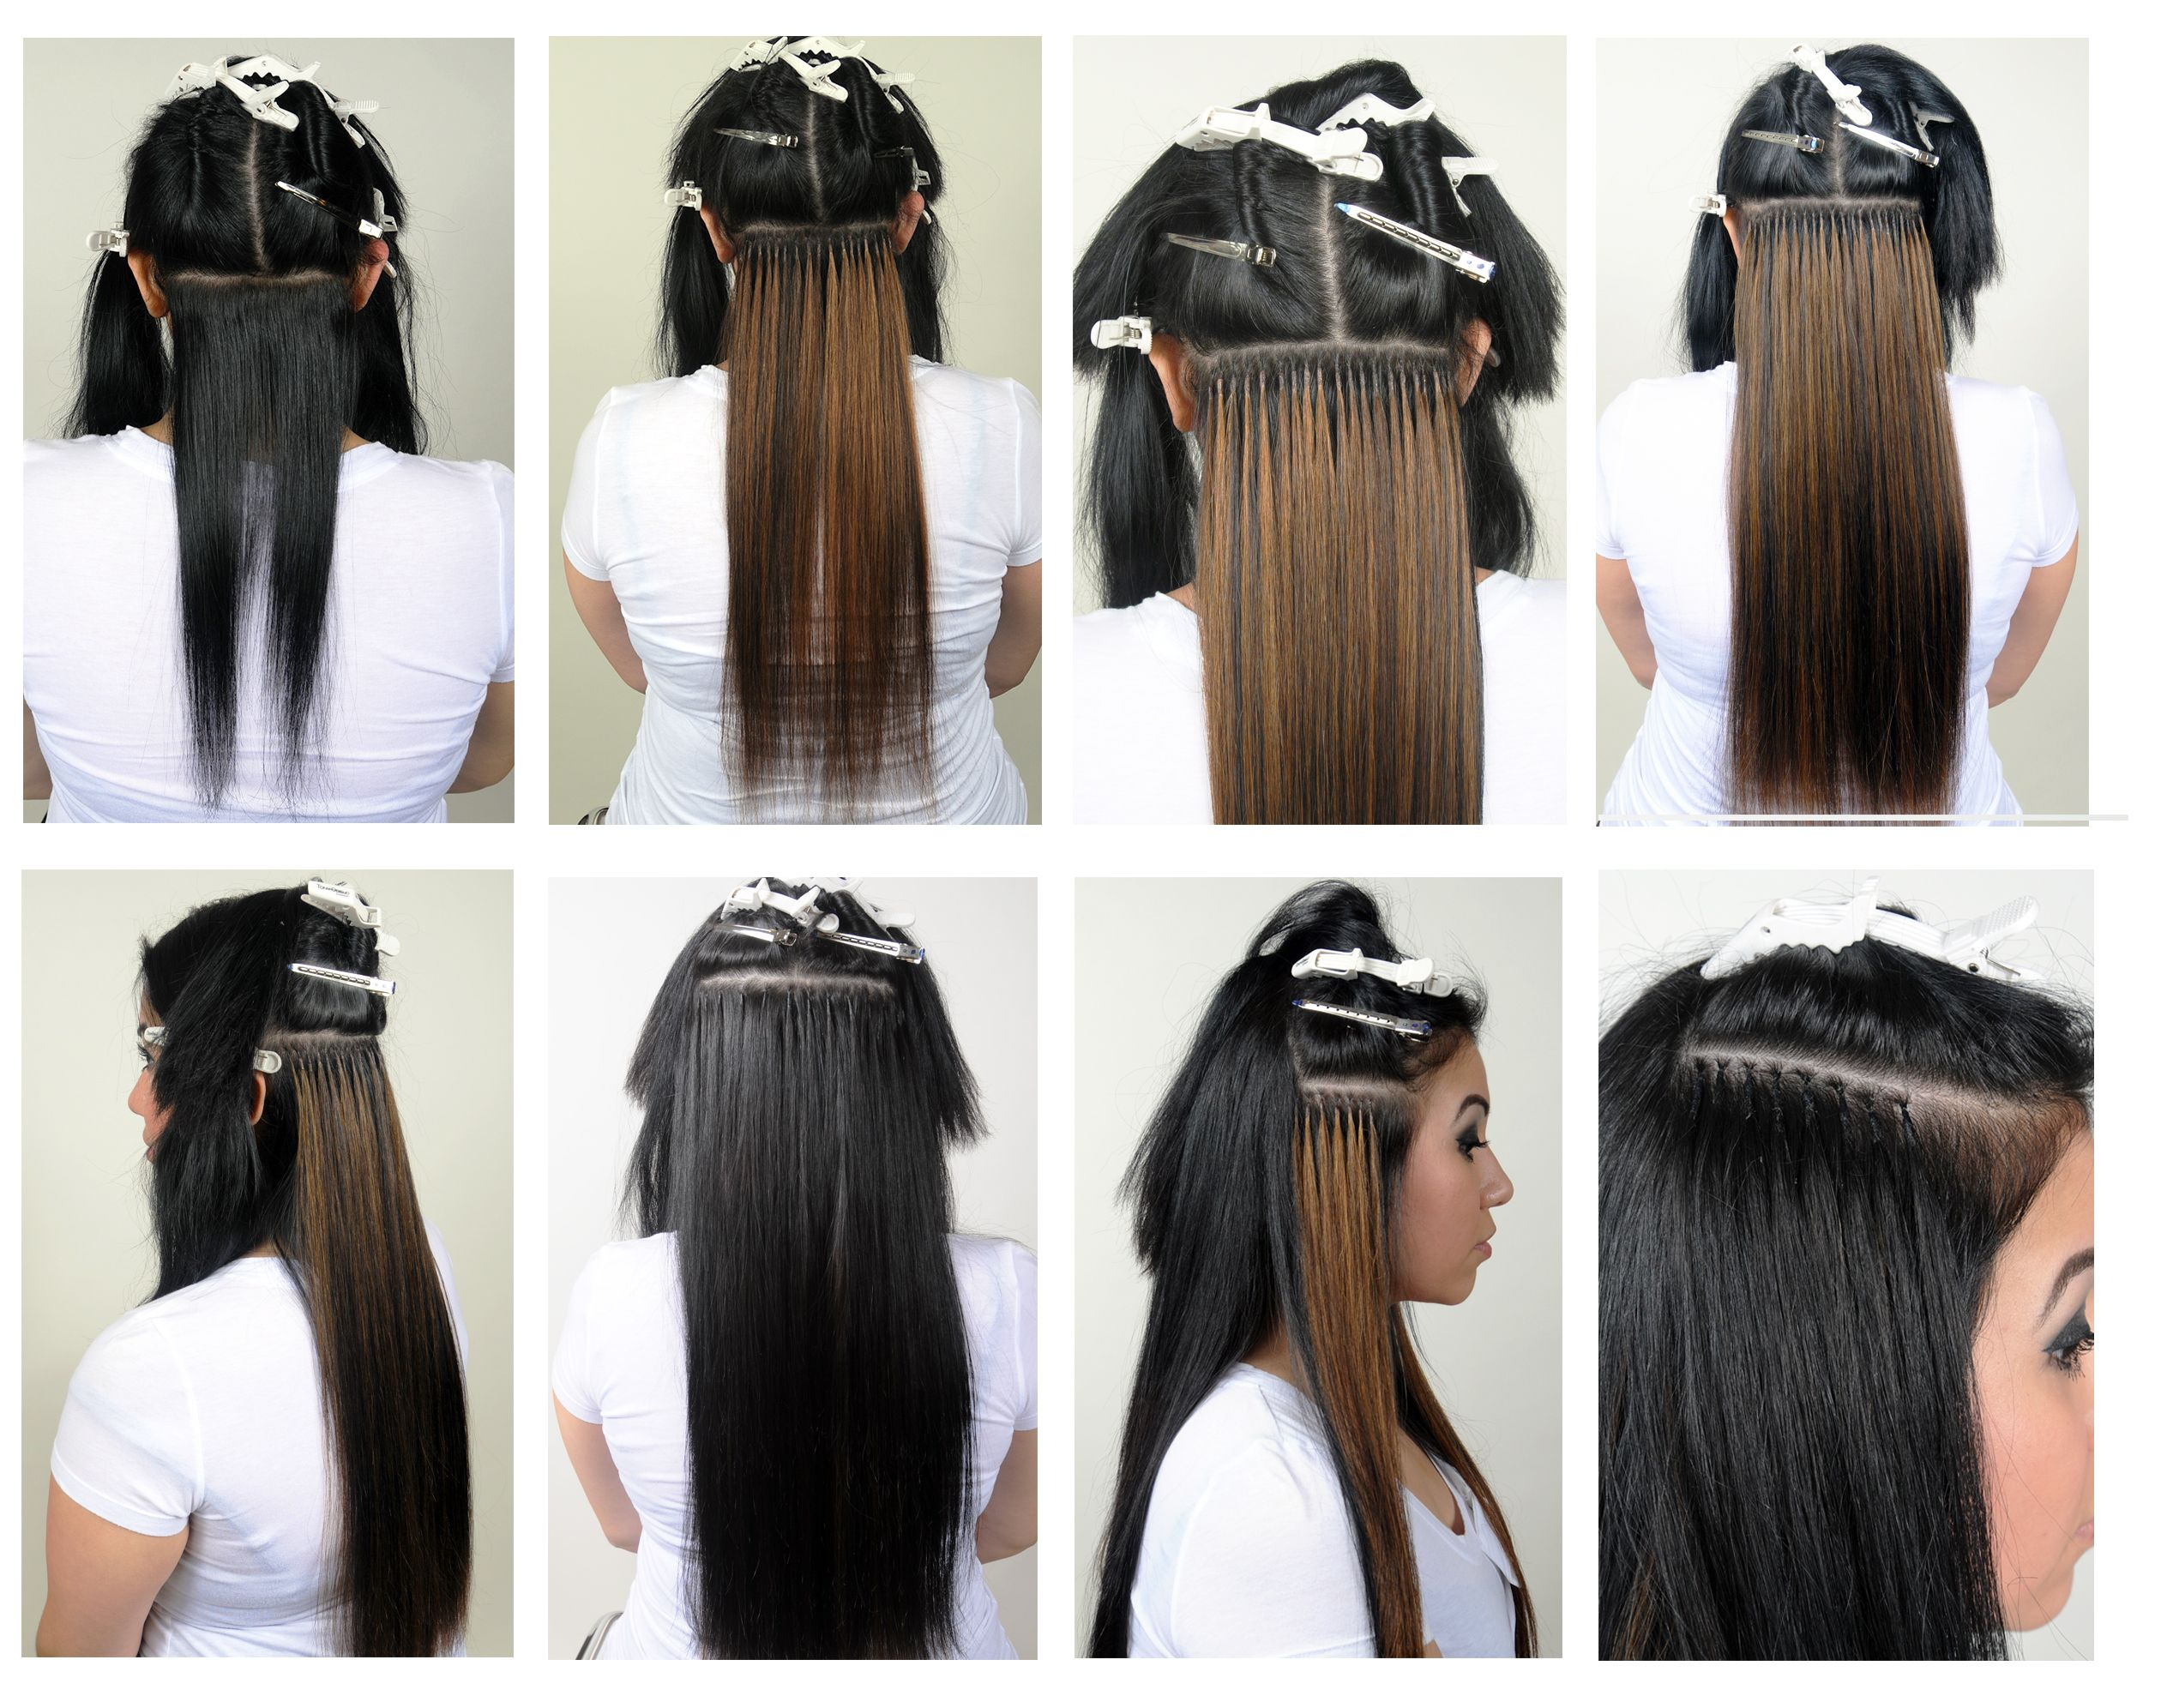 Fusion Hair Styles: African American Long Hairstyles With Bangs Fusion Hair